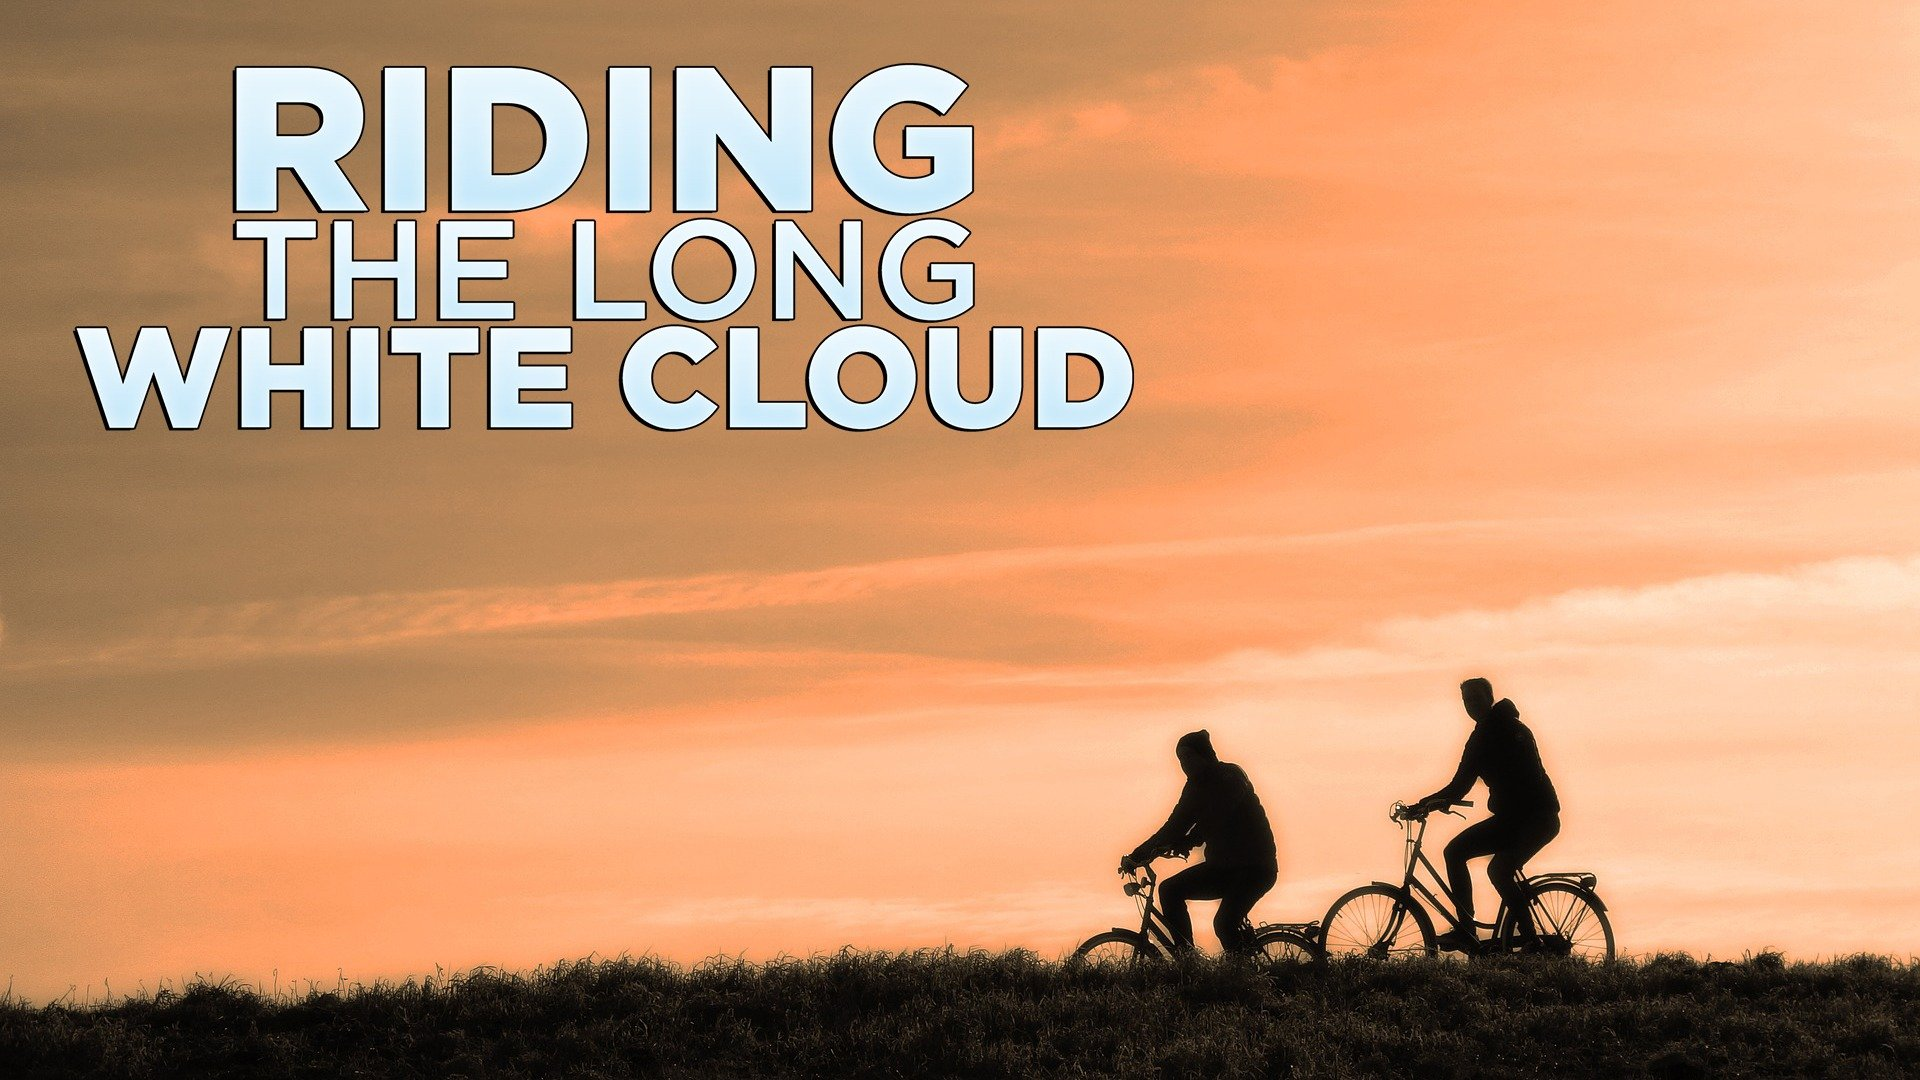 Riding the Long White Cloud